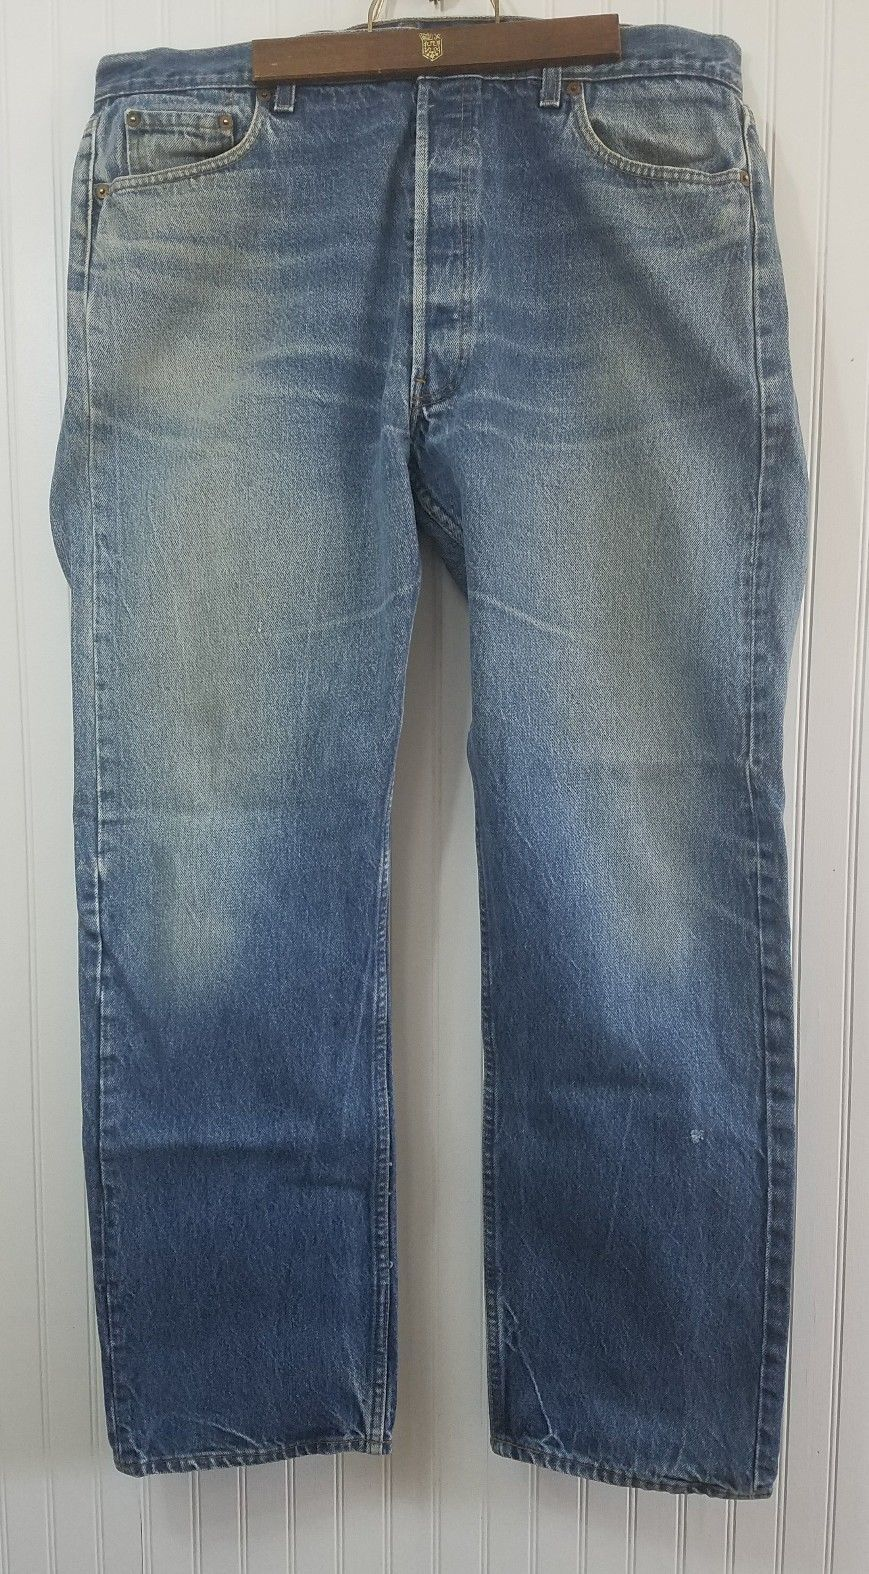 0fac7f20a0d VINTAGE Levi 501XX Men's Size 38 x 32 Jeans Button Fly Red Tag USA boho (I)  - $30.95